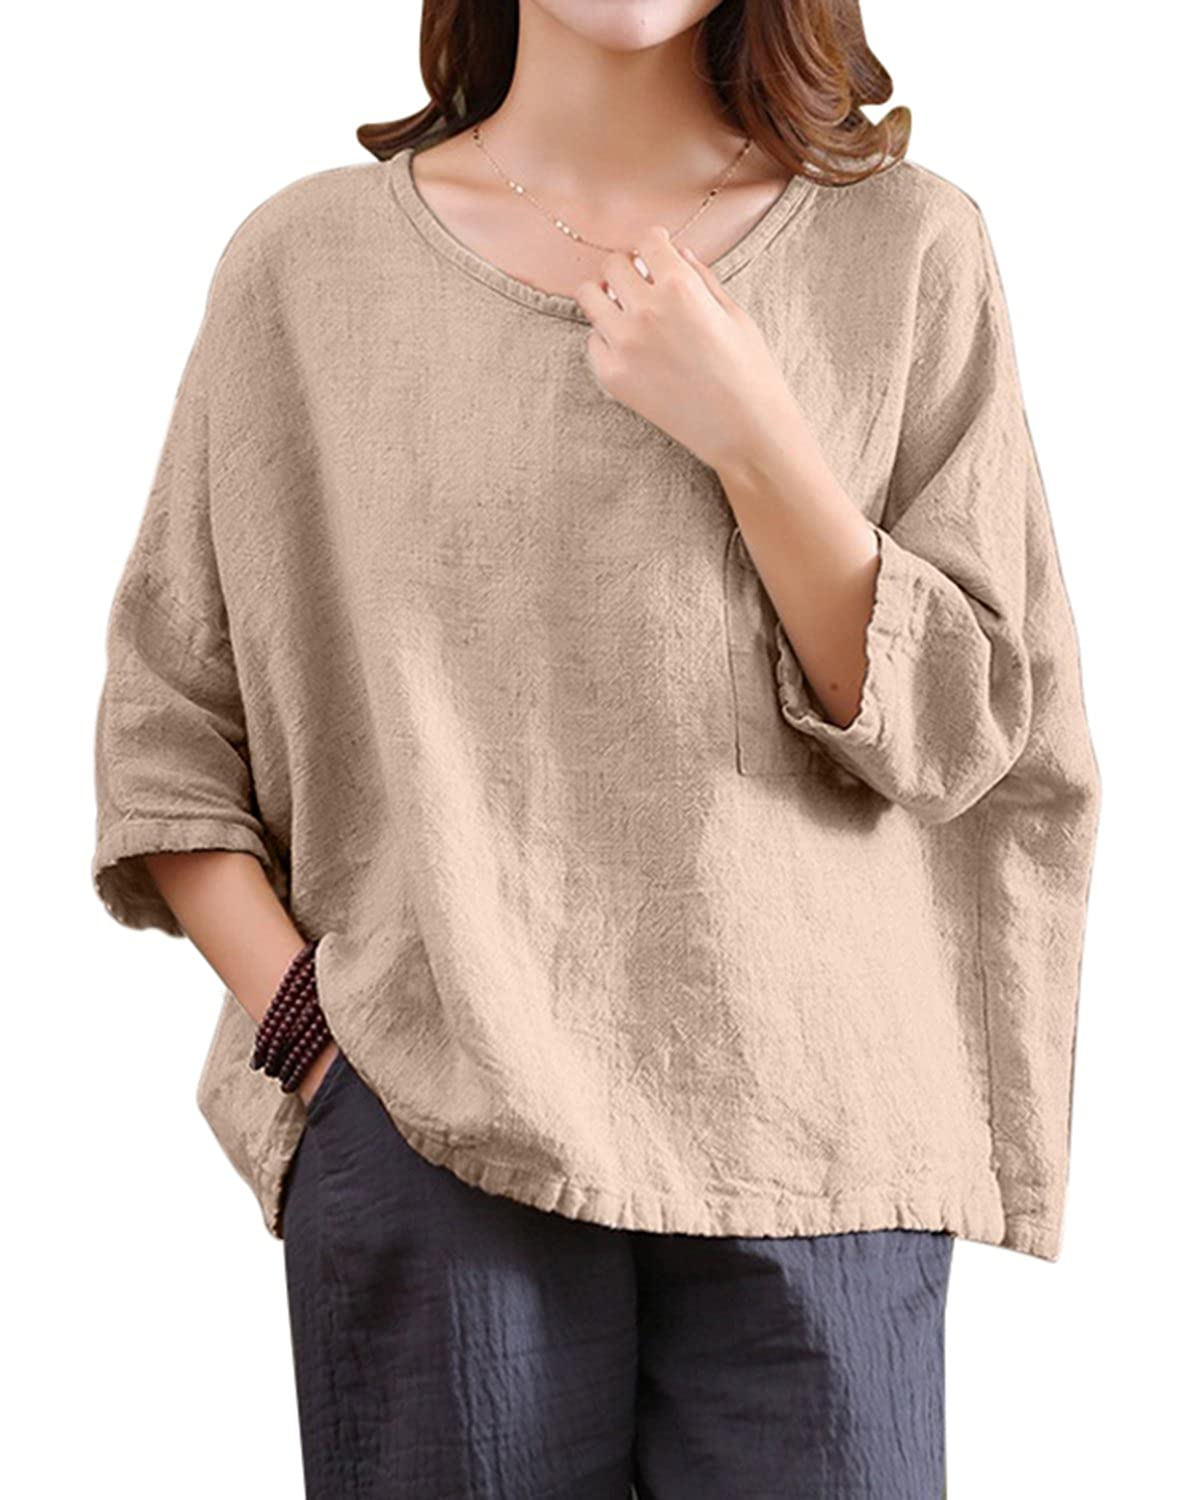 26e55f4a8f Features---Loose,3/4 Batwing Sleeve,Crewneck,Vintage,Plus size,Oversized ☆  Nice Style---This is a quite baggy loose blouse,fits for any kinds of body  shape ...